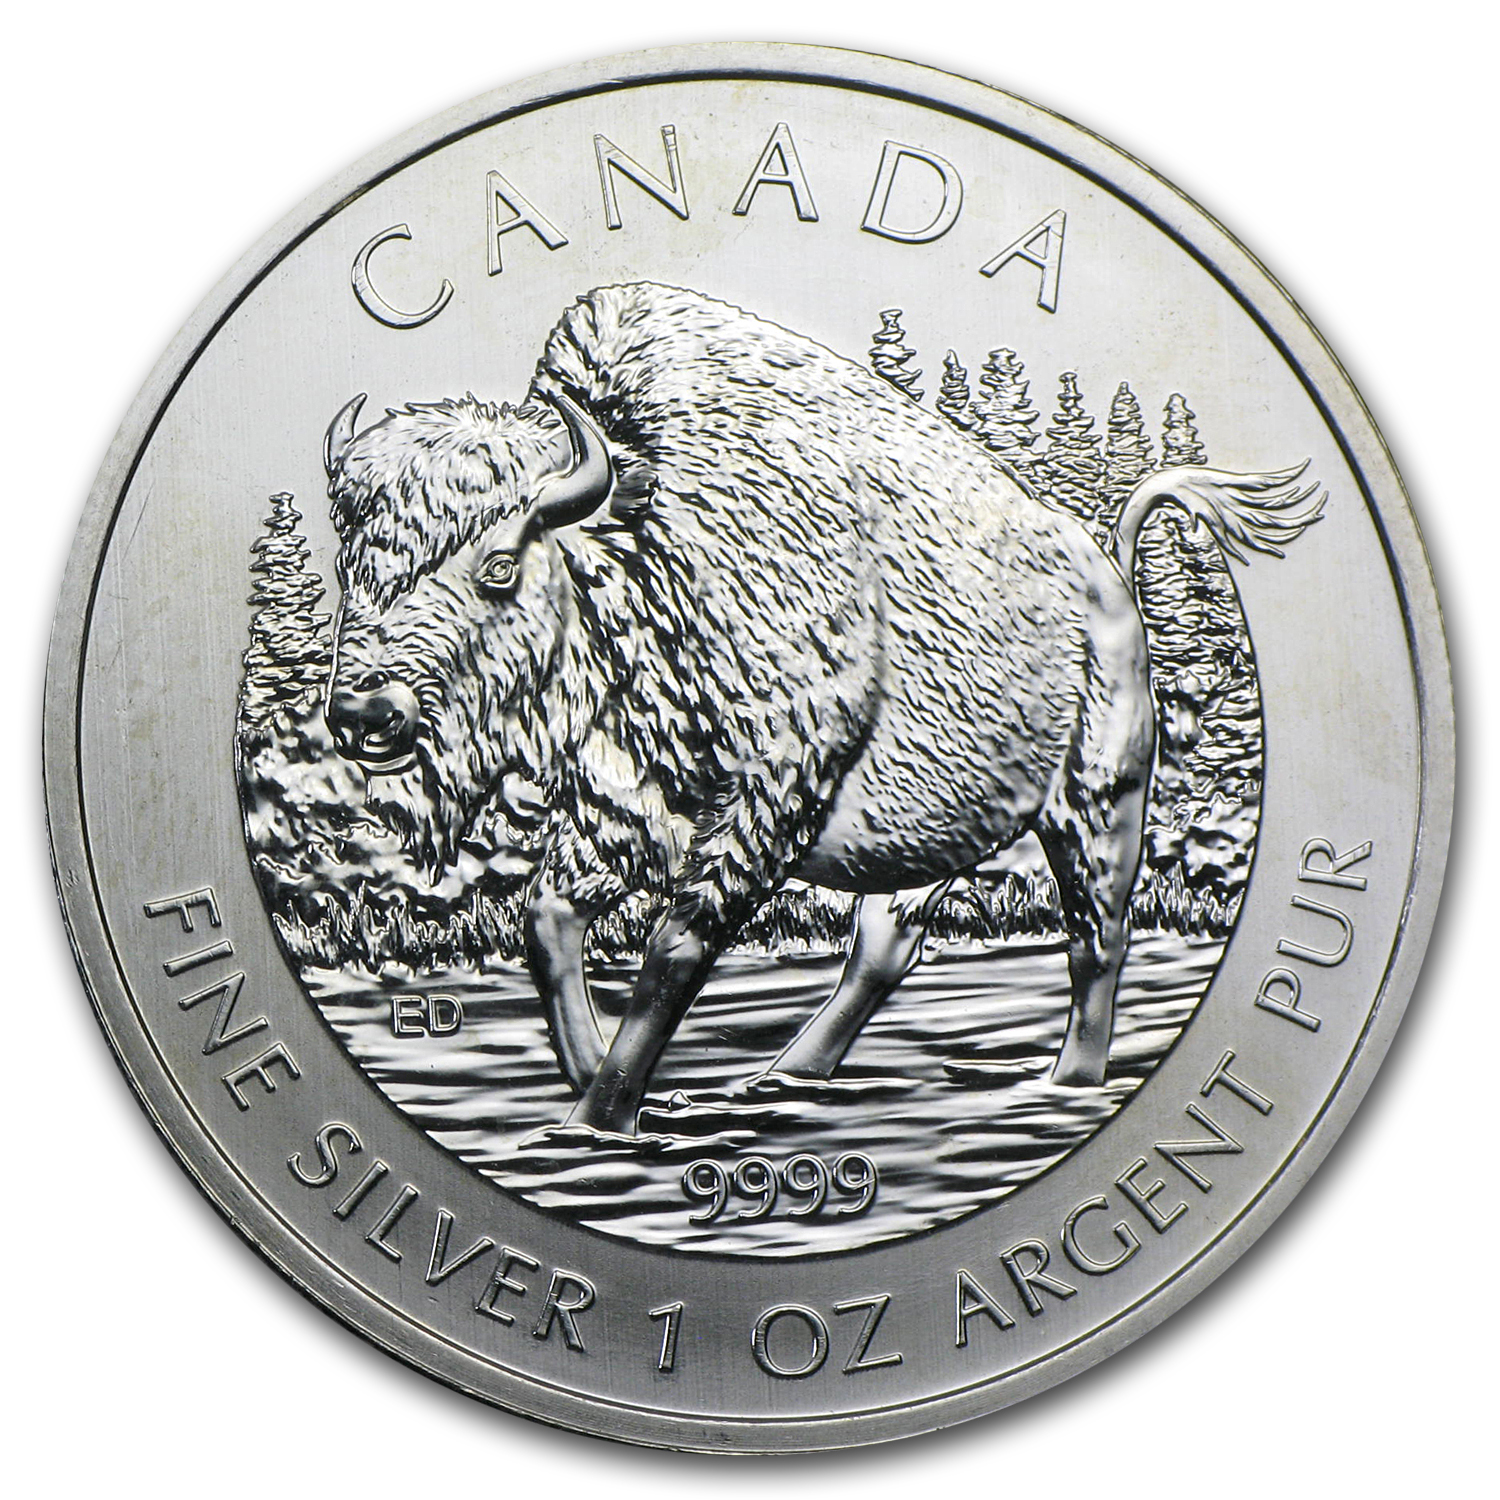 2013 1 oz Silver Canadian Wood Bison (Wildlife Series) - Impaired